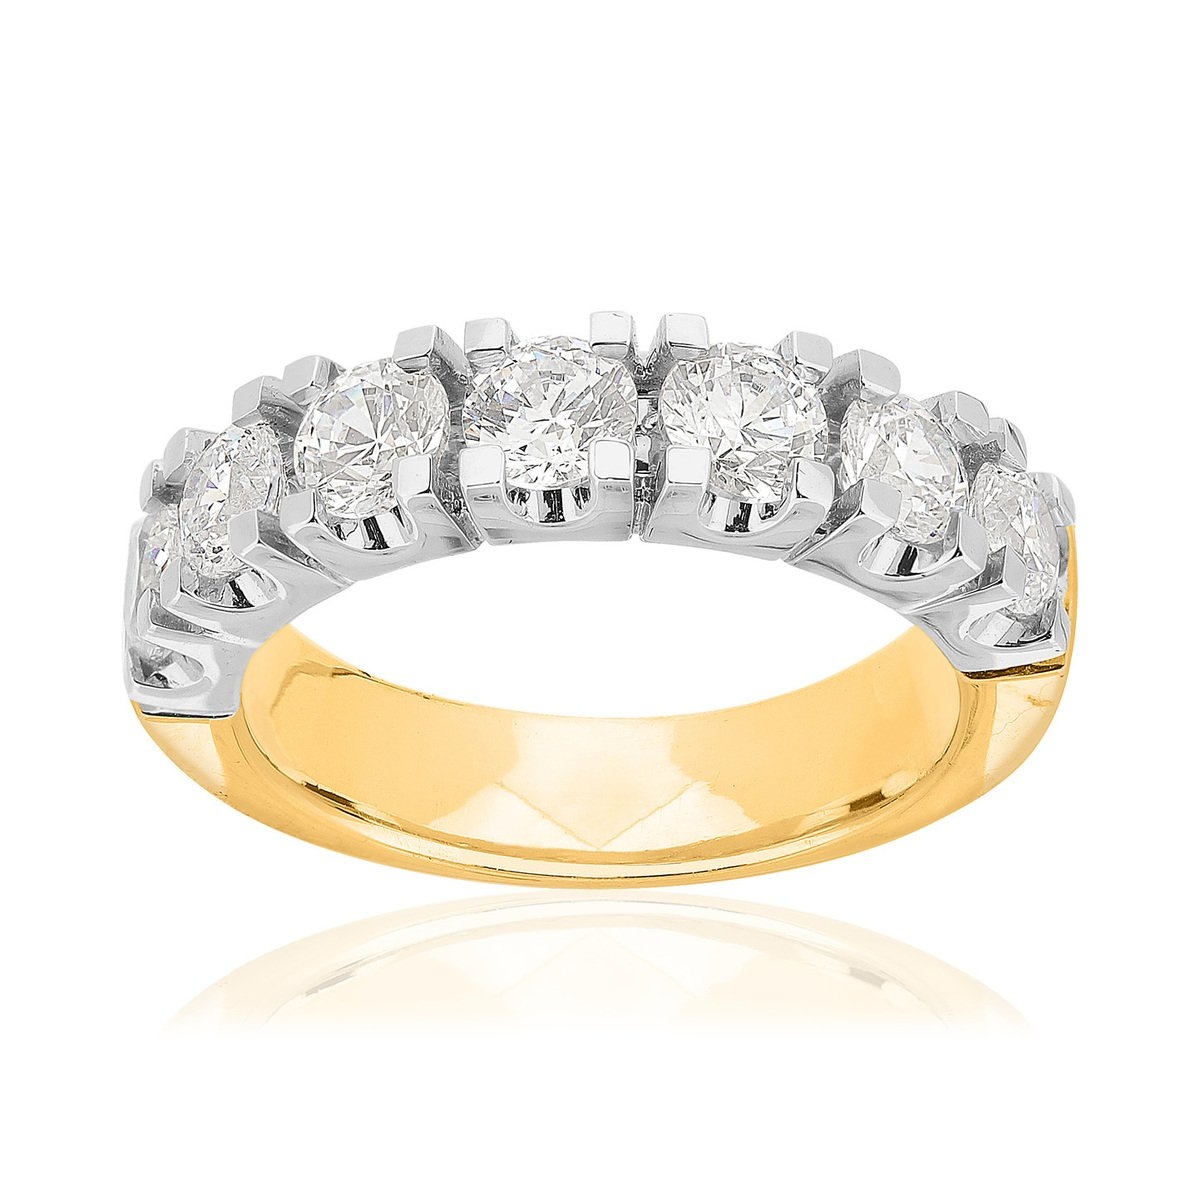 Bague 2 ors 750 diamant synthetique